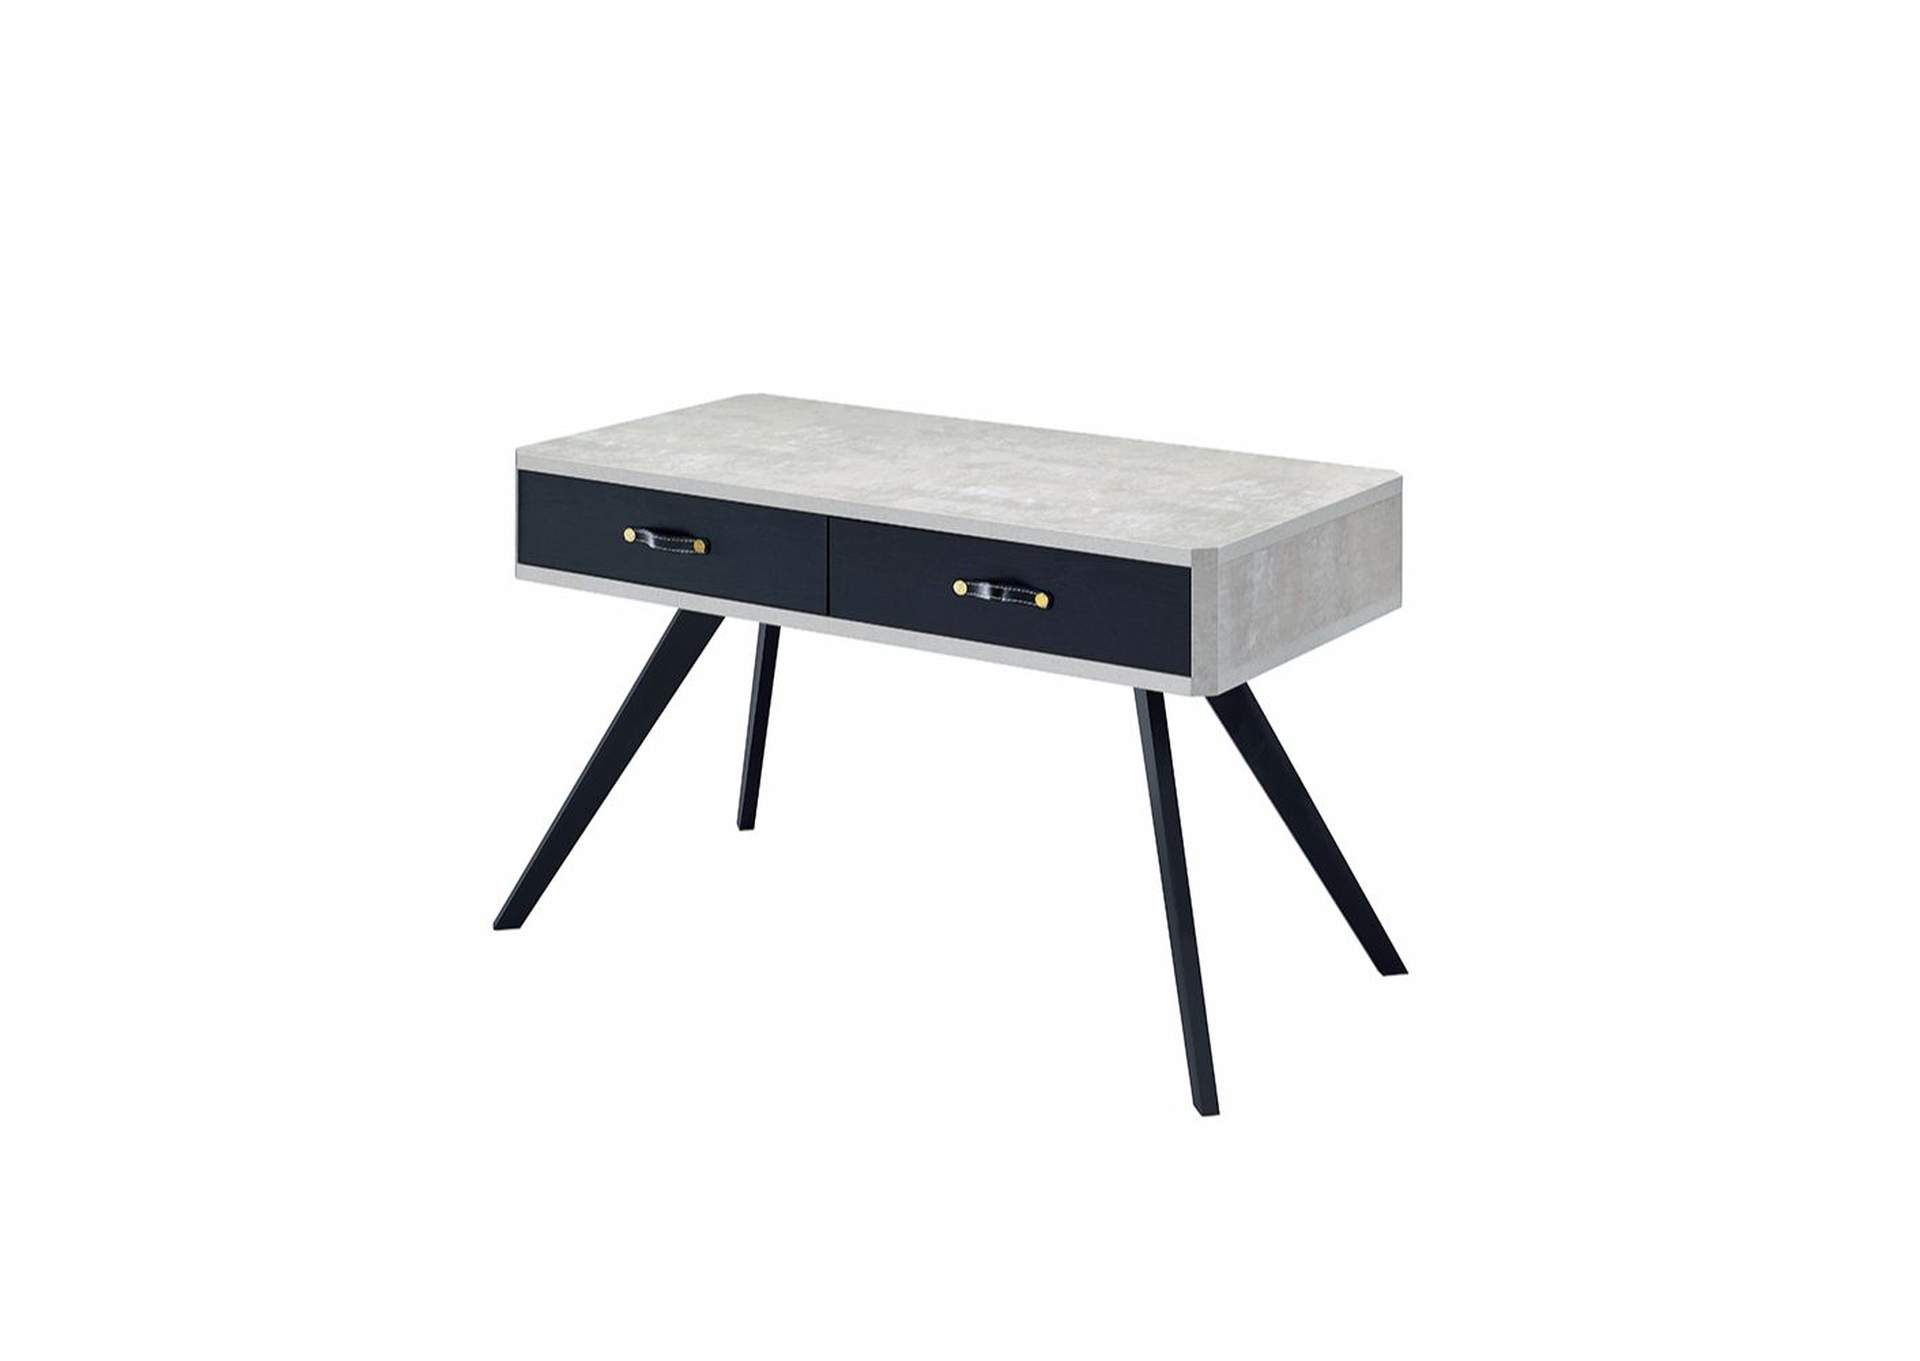 Magna Faux Concrete & Black Desk,Acme